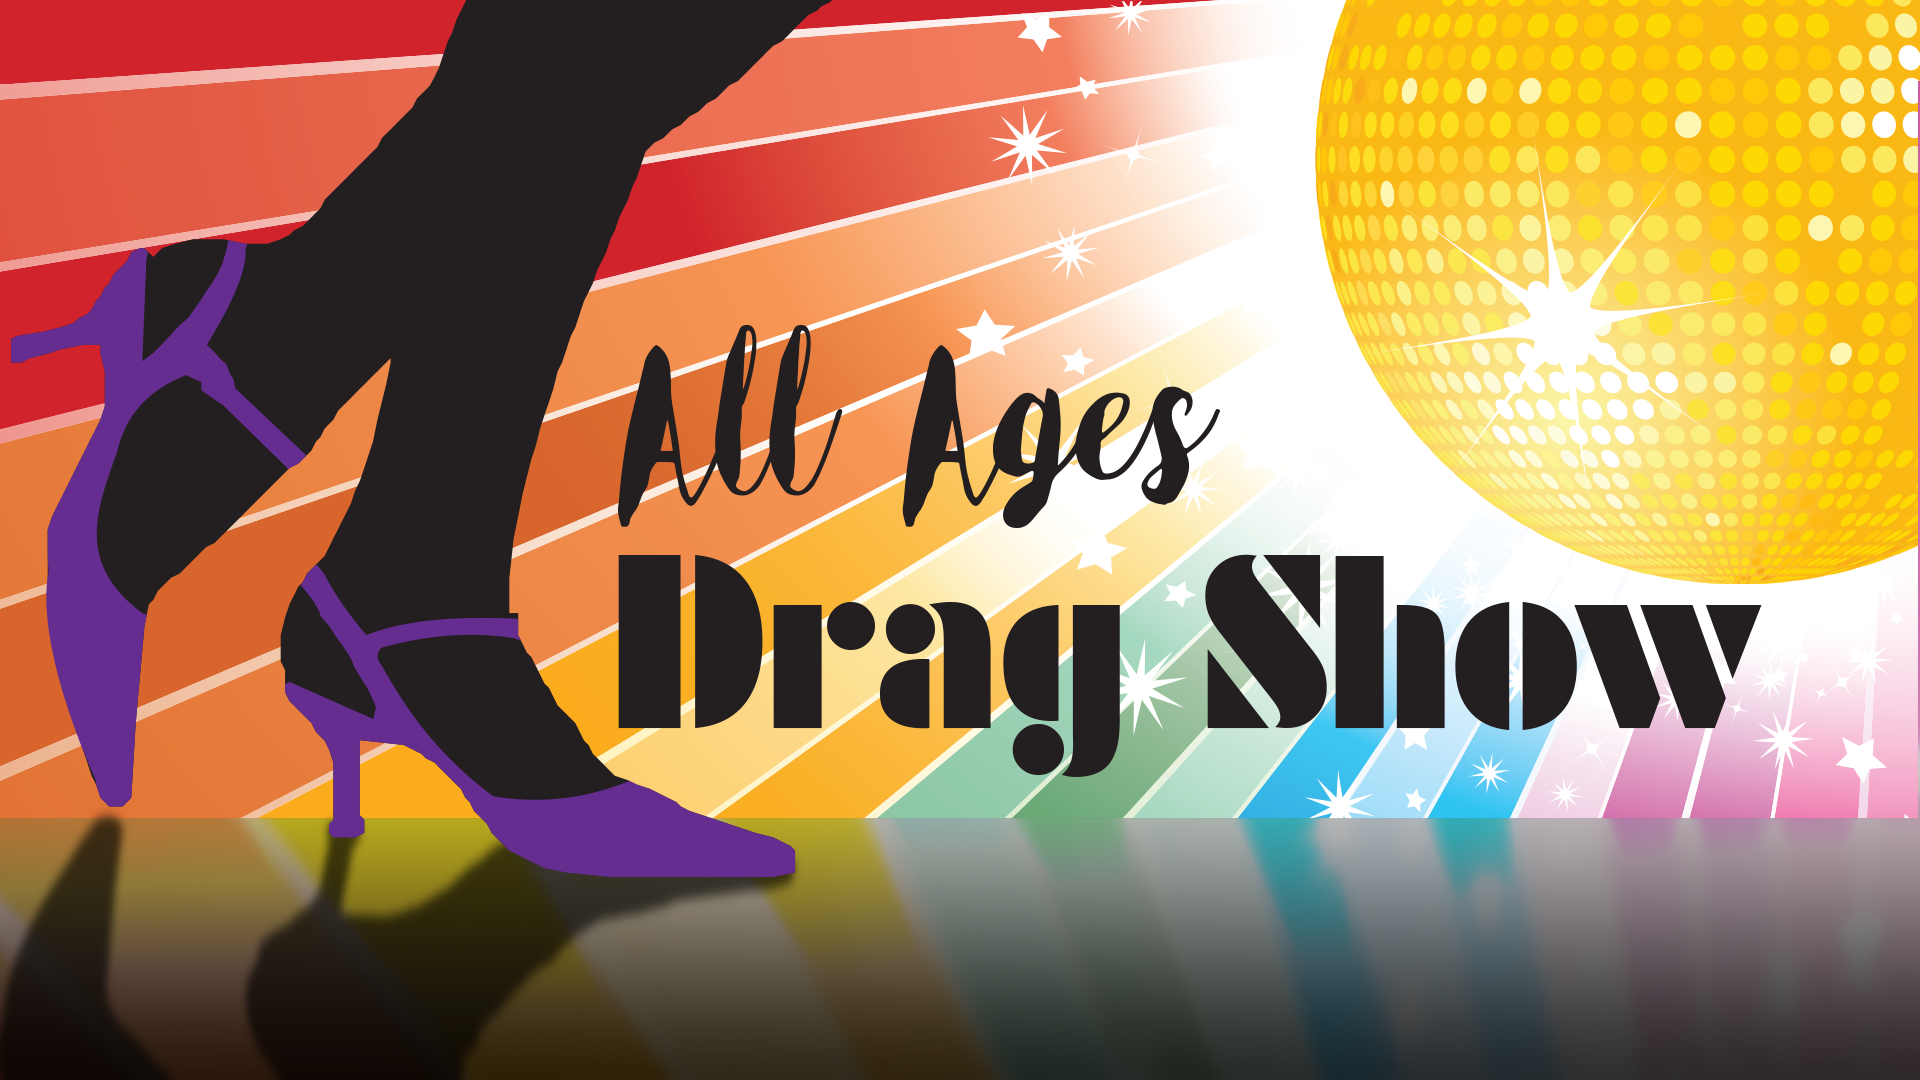 All Ages Drag Show graphic of shoes and rainbow.